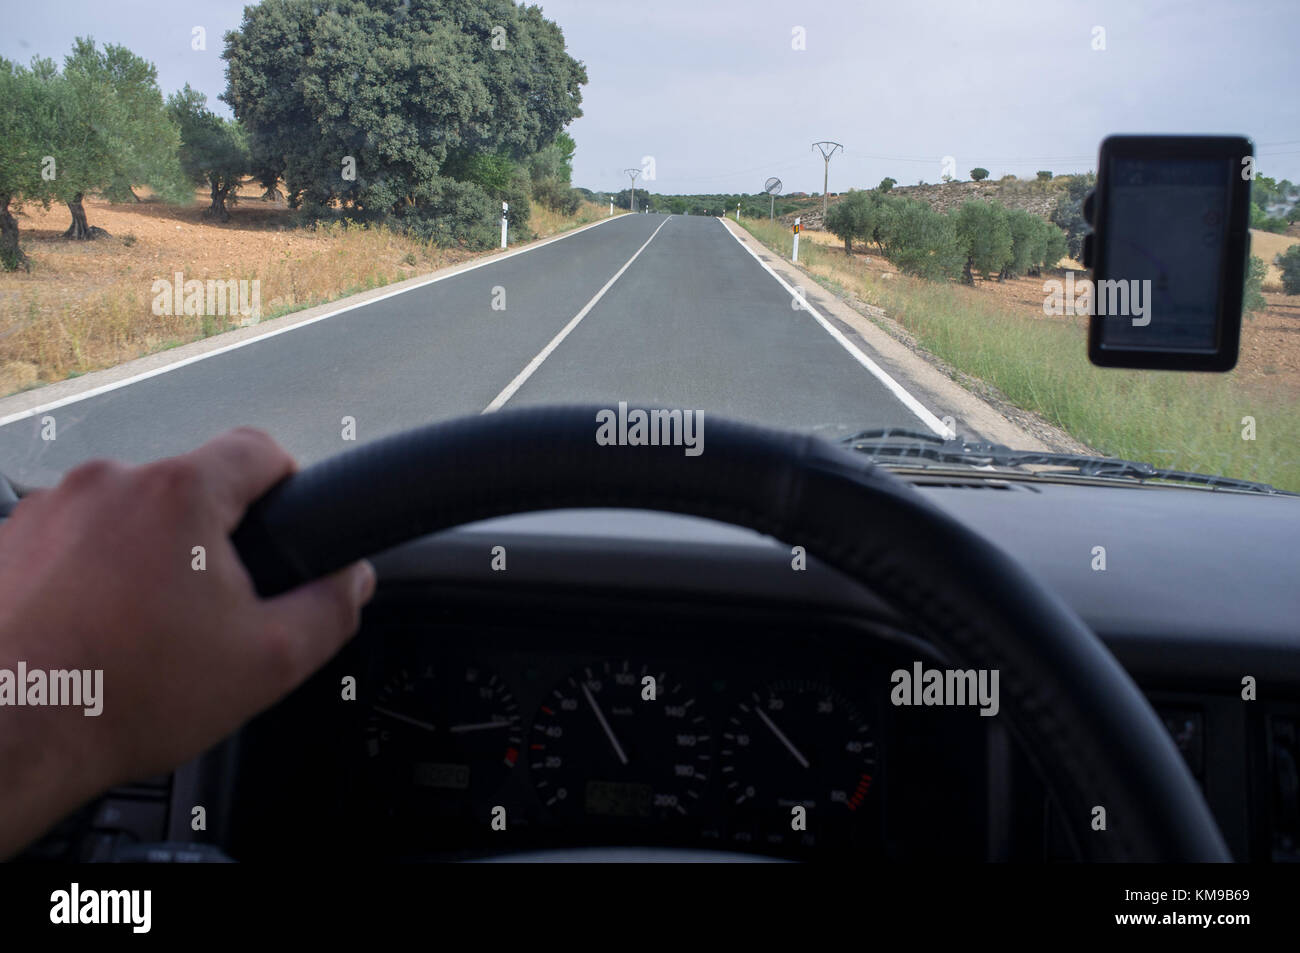 Driving calmly by local road with GPS. View from the inside of the car - Stock Image